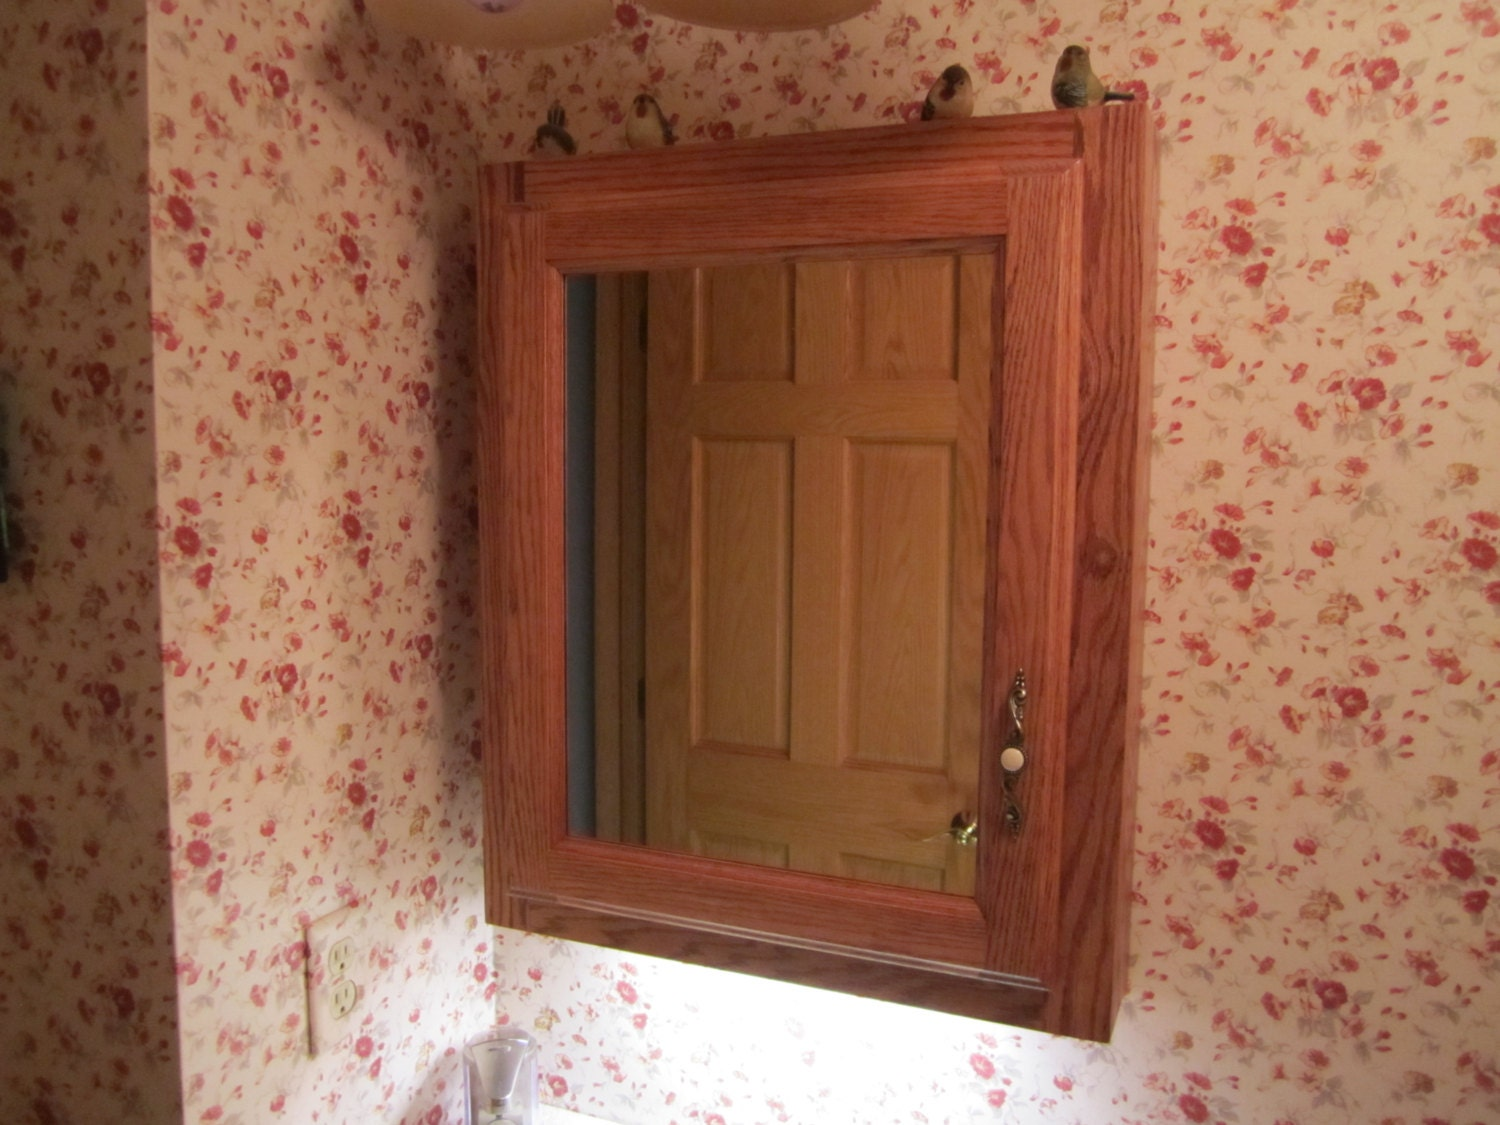 red oak recessed wall mounted medicine cabinet with mirror. Black Bedroom Furniture Sets. Home Design Ideas